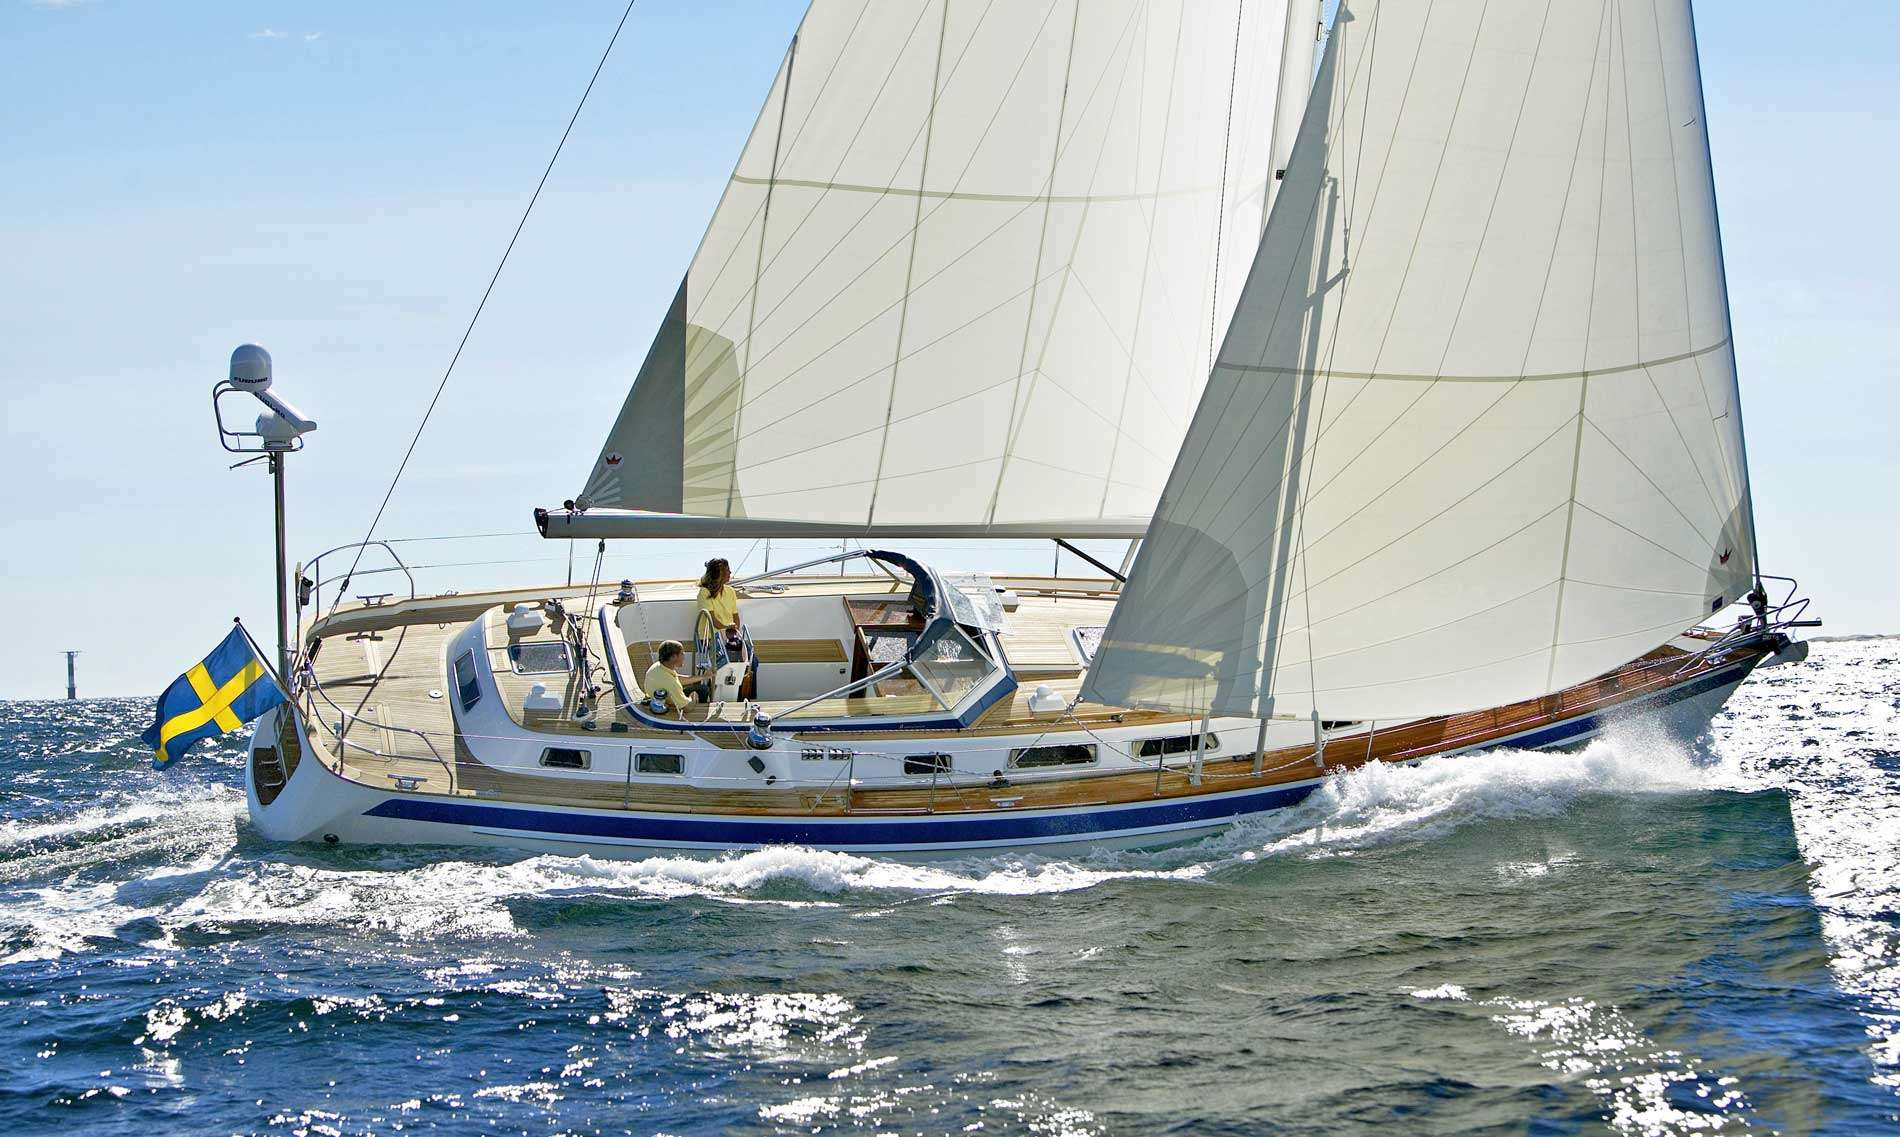 Main image of FALABRACH yacht